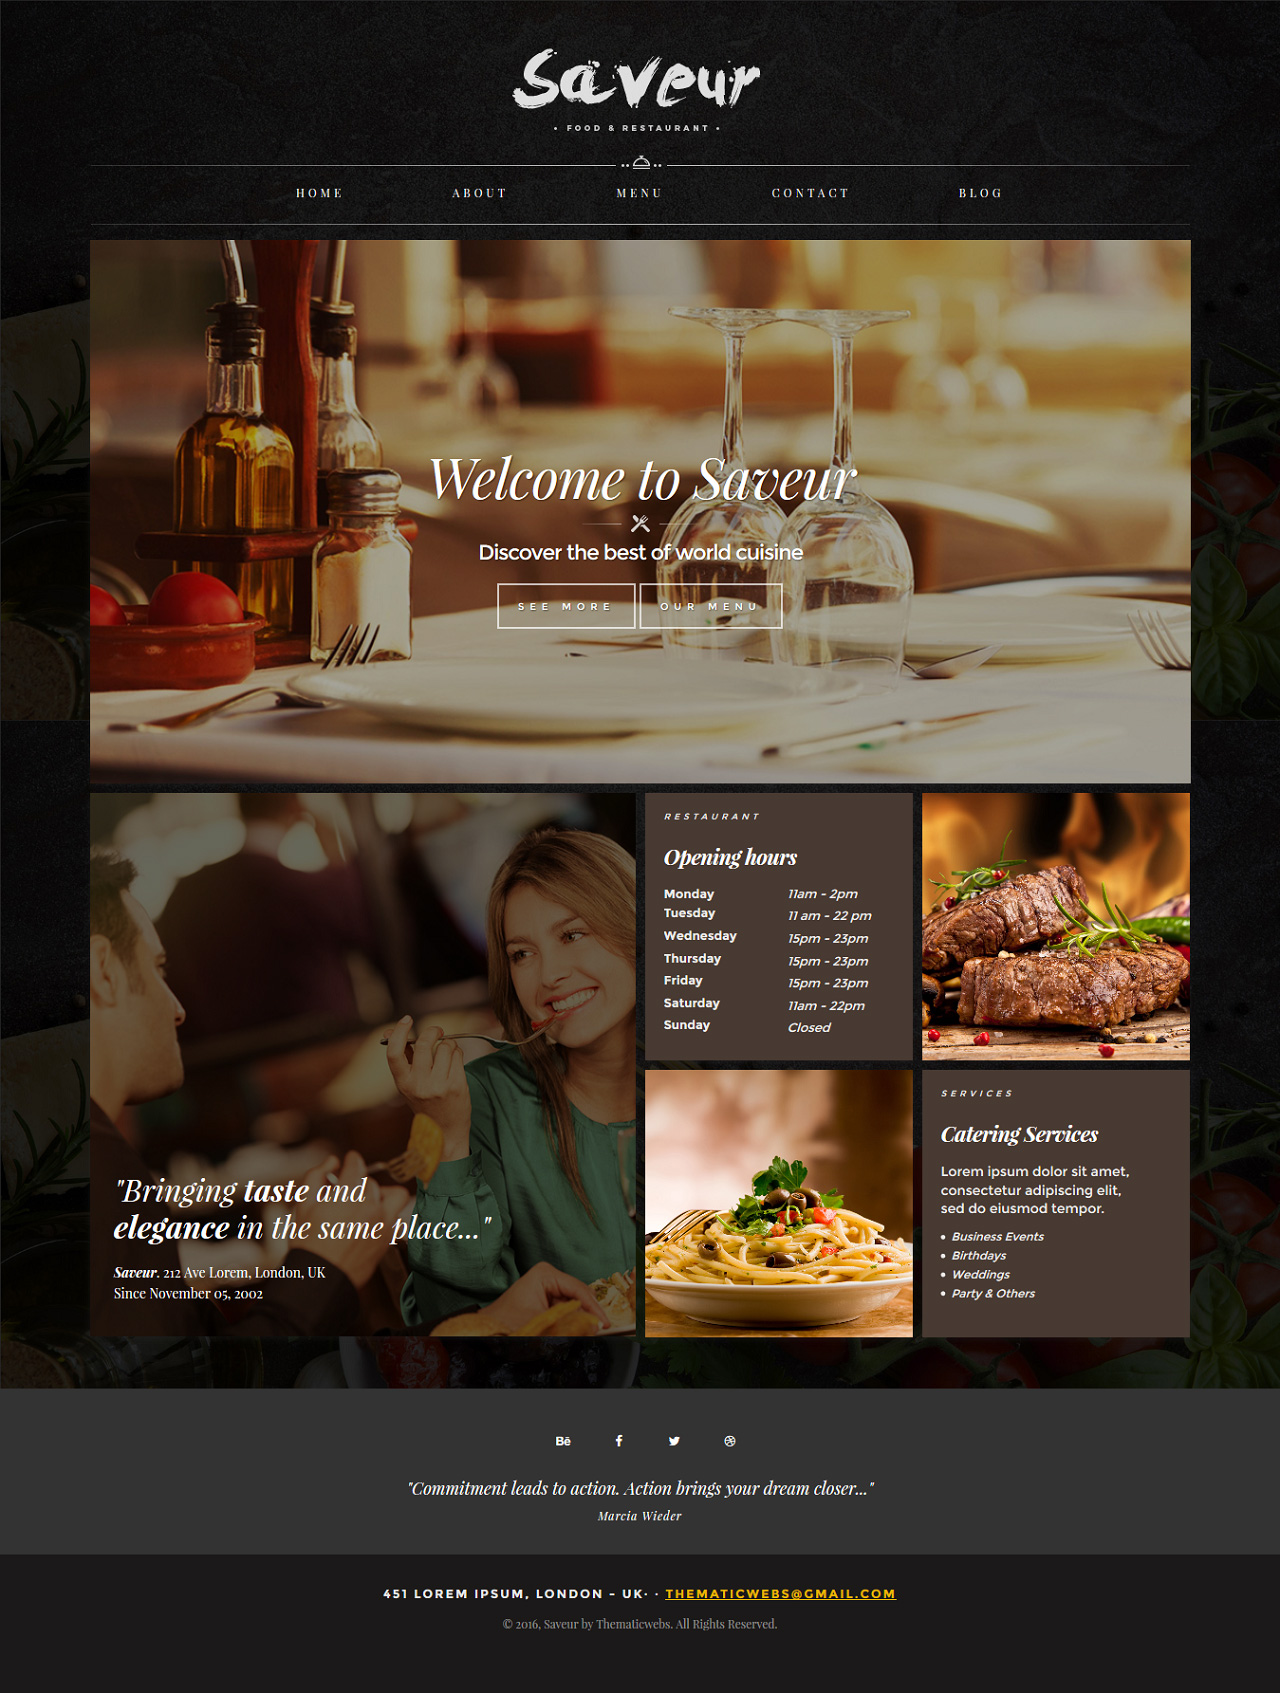 Saveur Website Screenshot